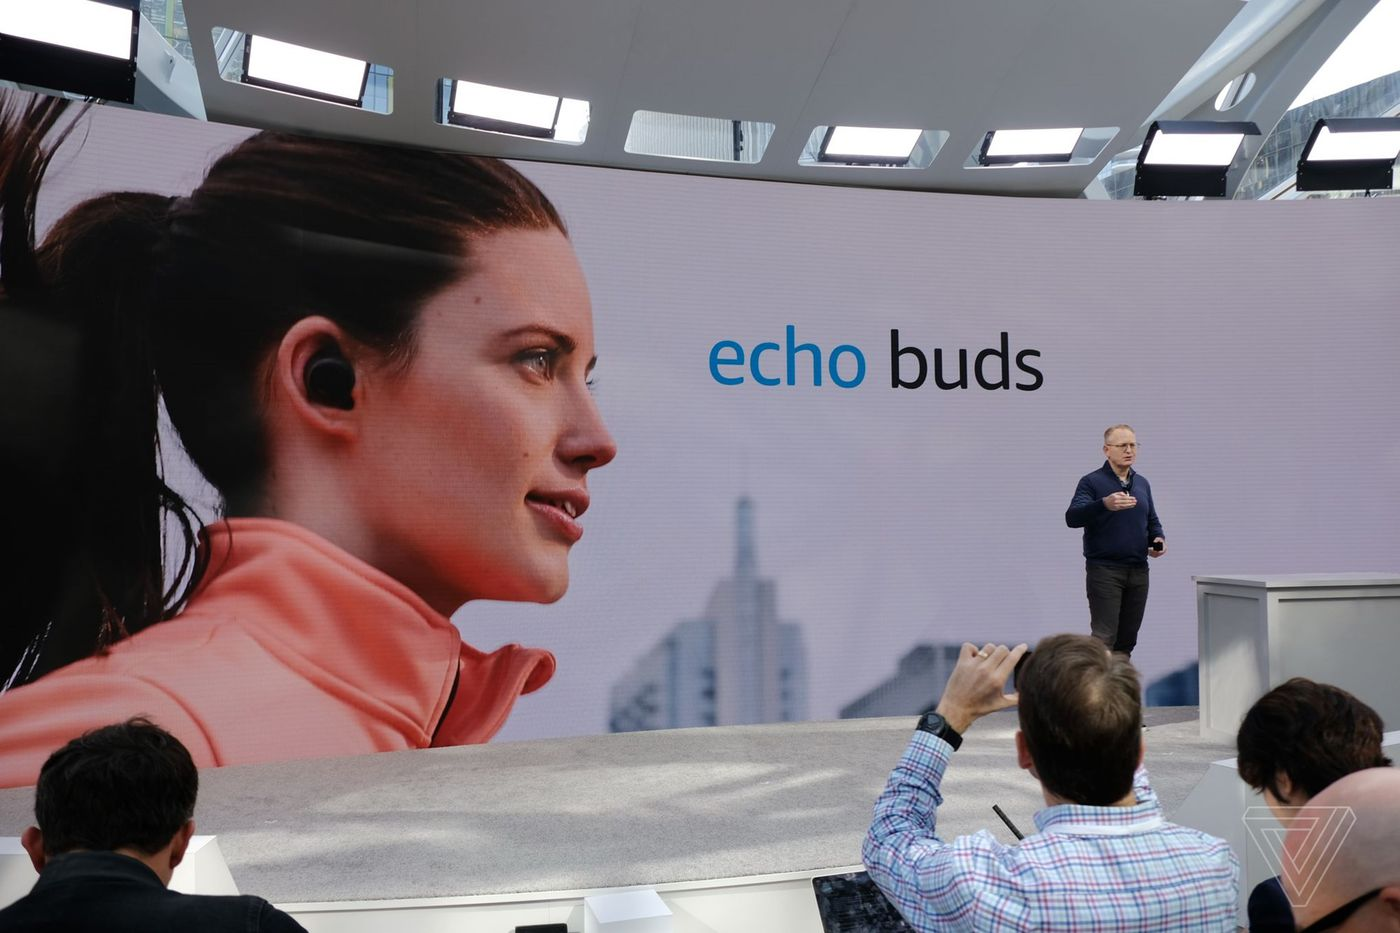 Amazon announces Echo Buds headphones with Alexa and Bose noise reduction for $129